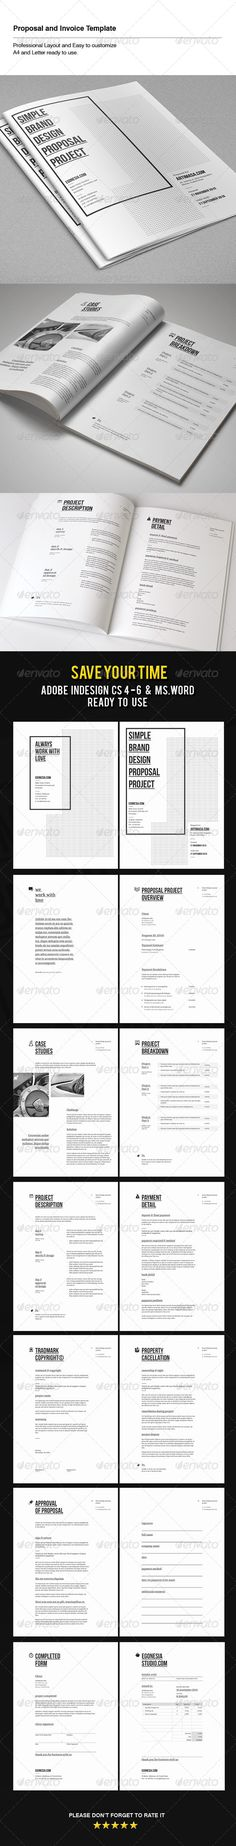 Stylish Invoices  Invoice Design